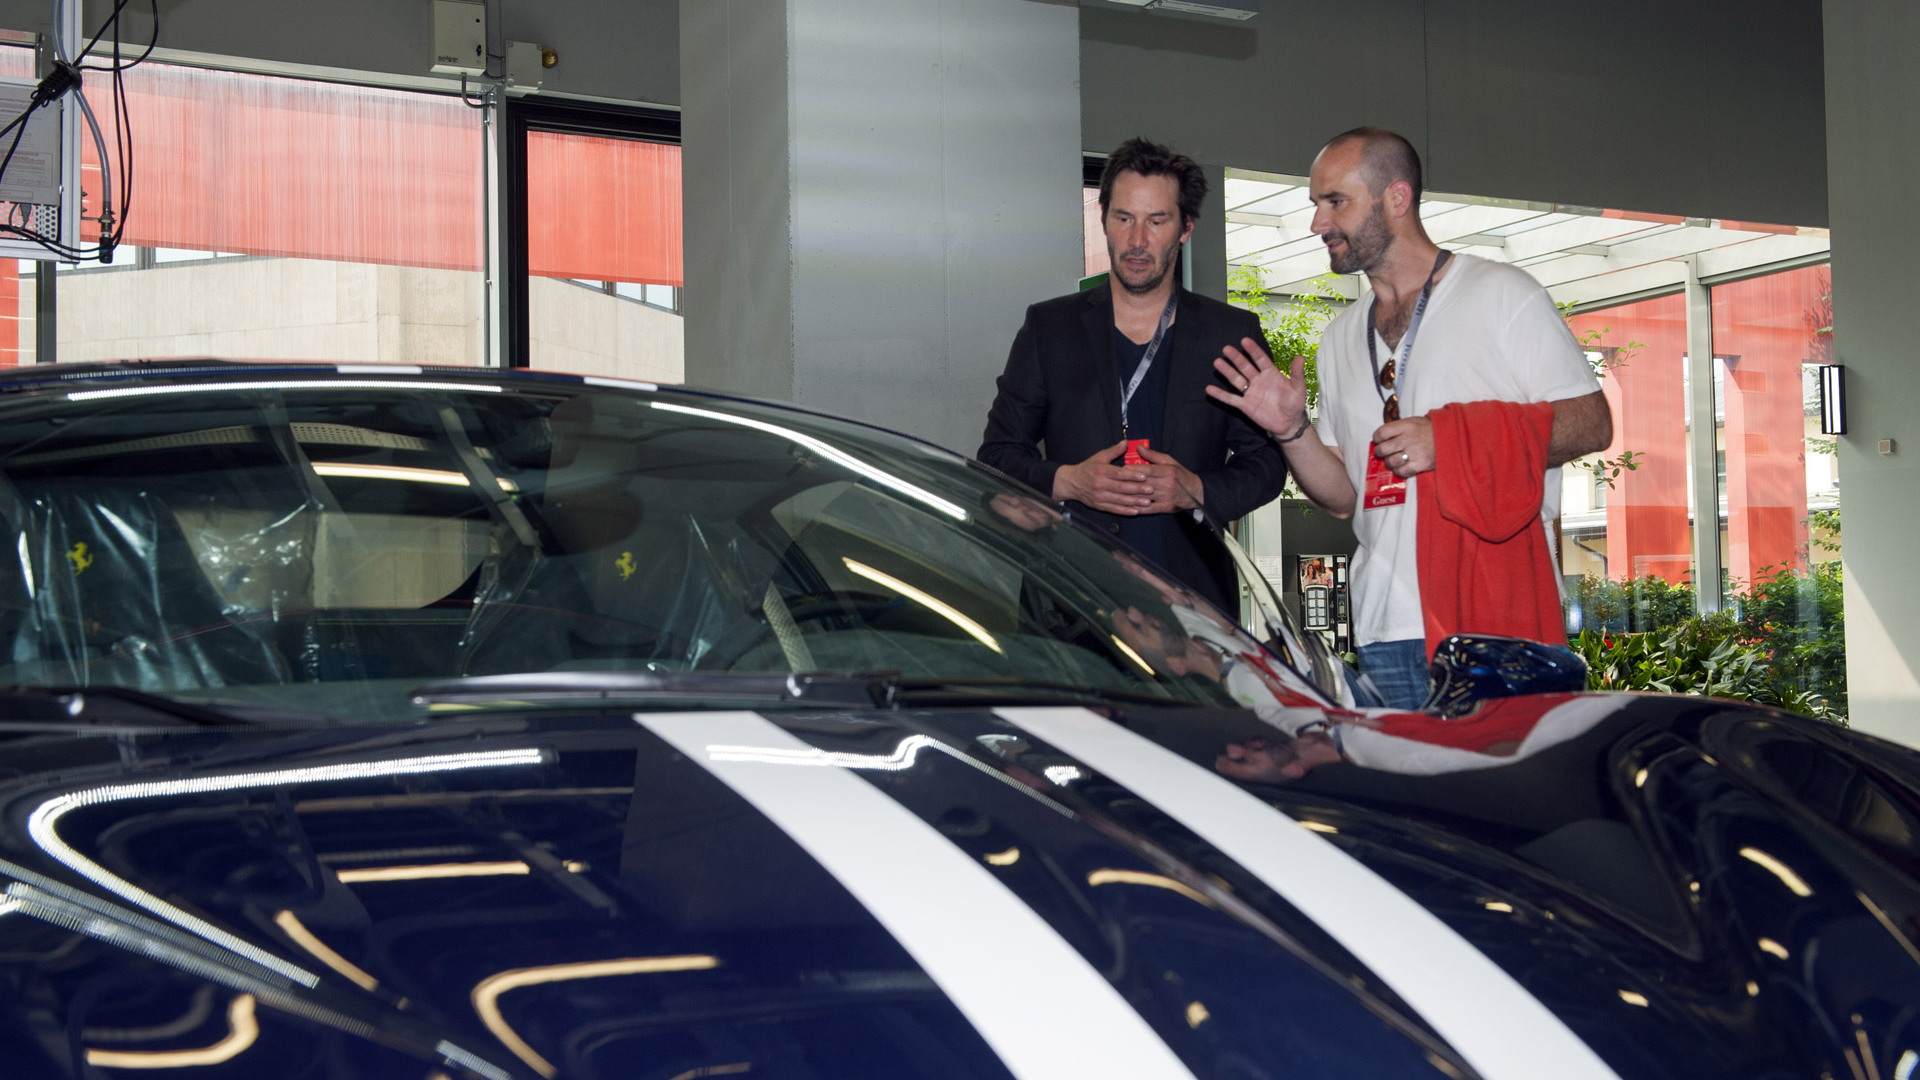 Keanu Reeves at Ferrari headquarters in Maranello, Italy - June 2015